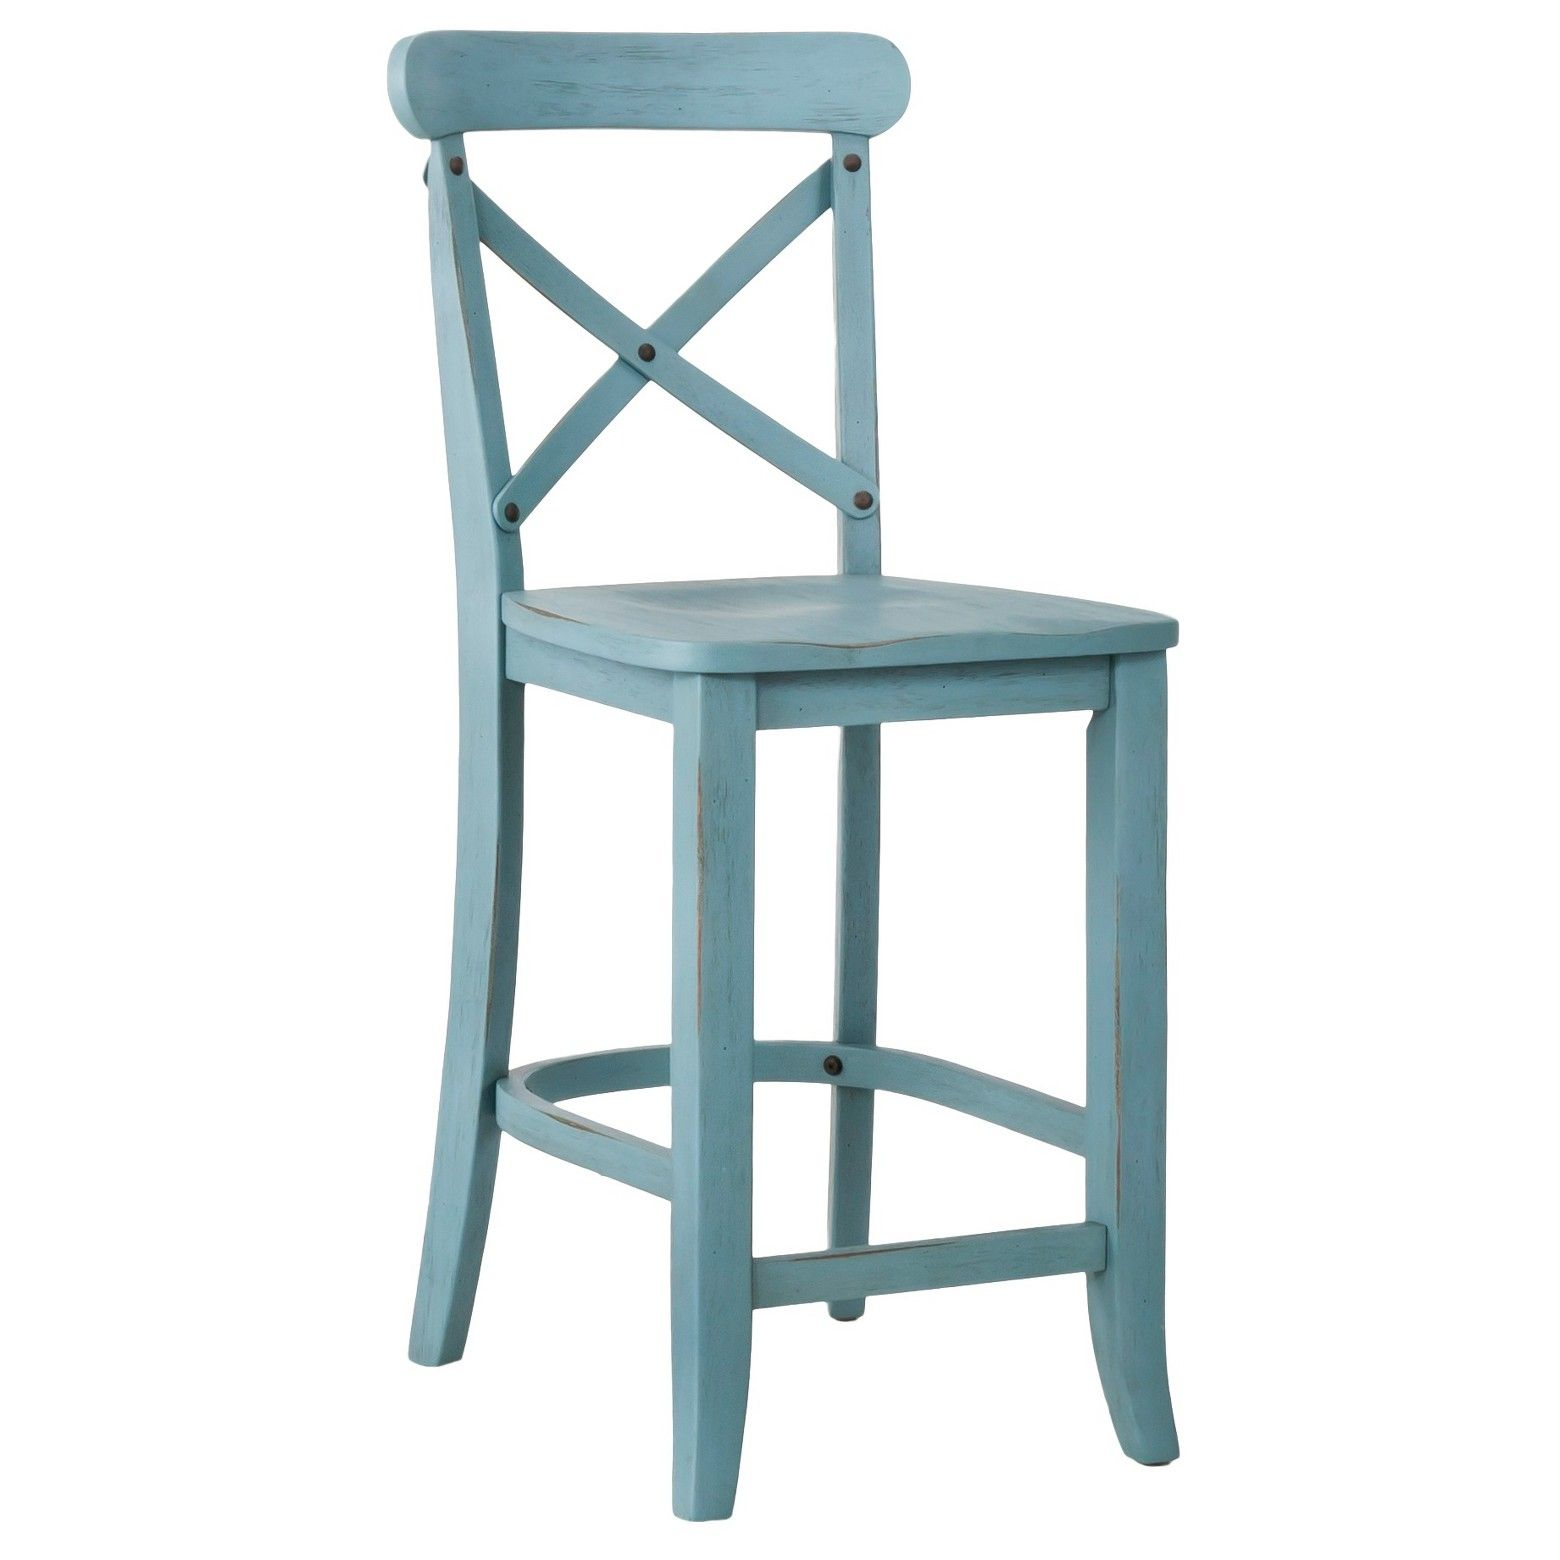 Add A Rustic Touch To Your Kitchen Or Dining Area With A French Country X Back Barstool In Blue This High Wood Chair Ha Counter Stools 24 Counter Stools Stool